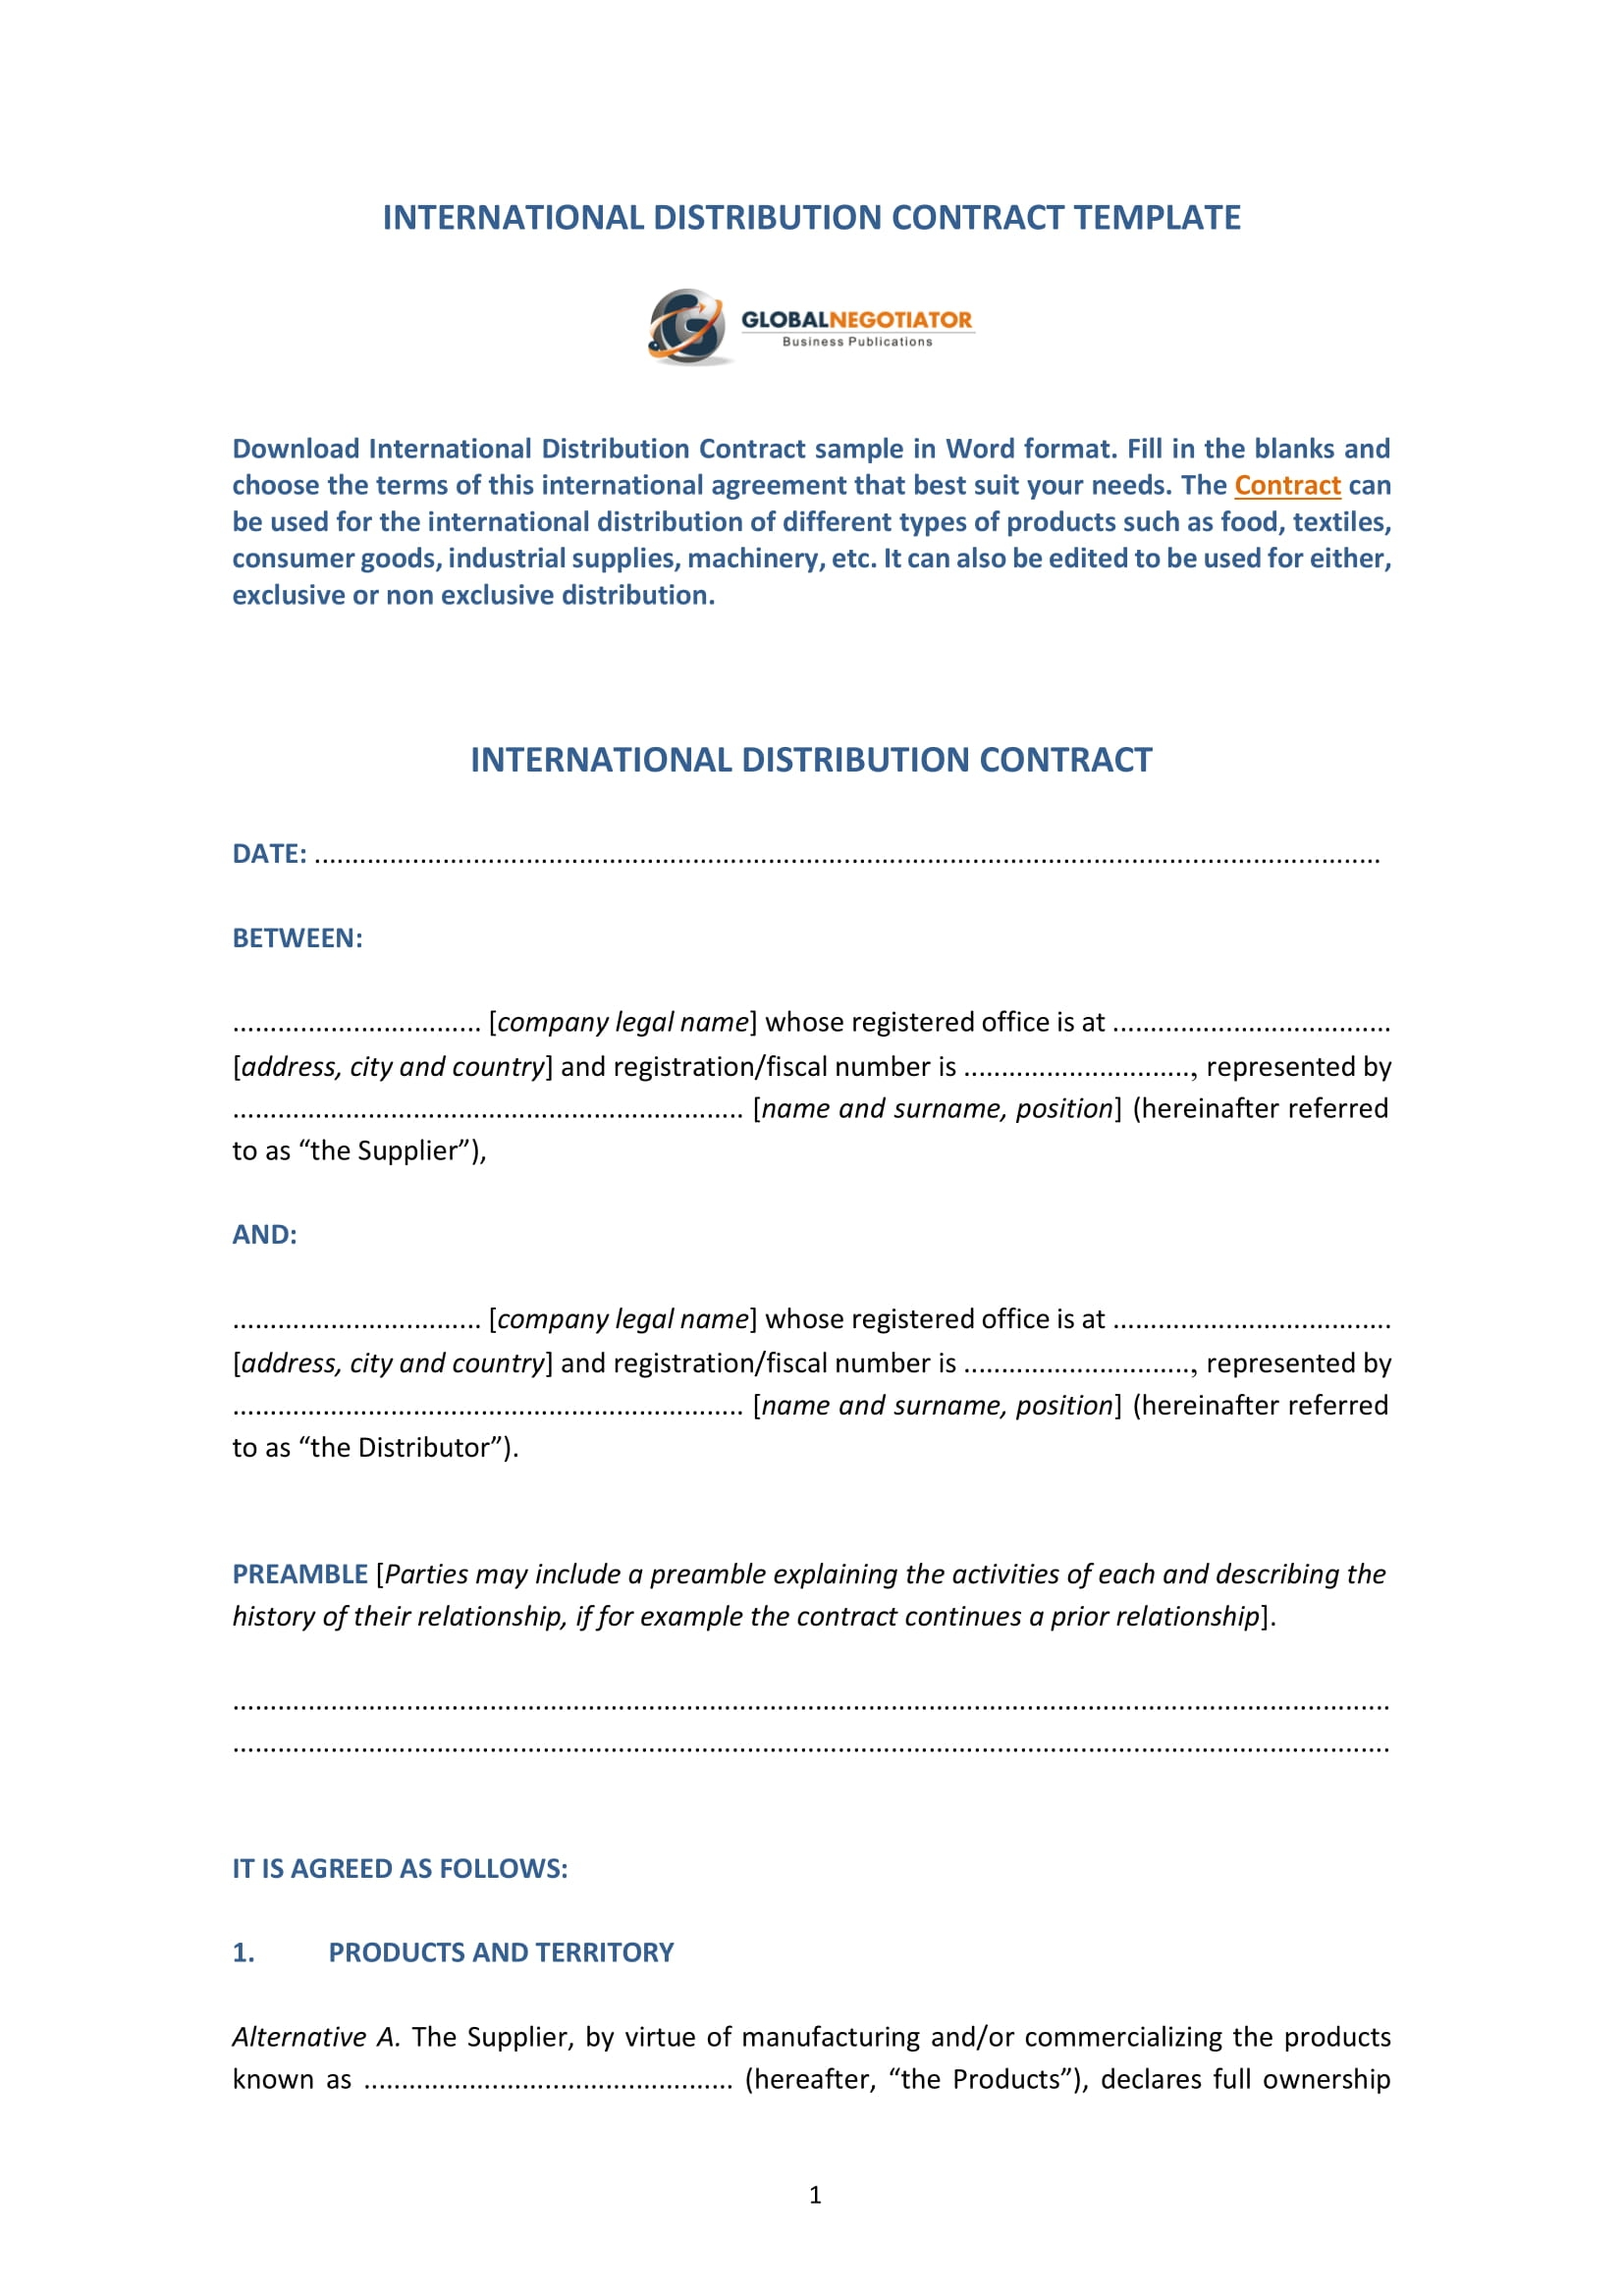 009 Amazing Distribution Agreement Template Word Image  Distributor Exclusive ContractFull